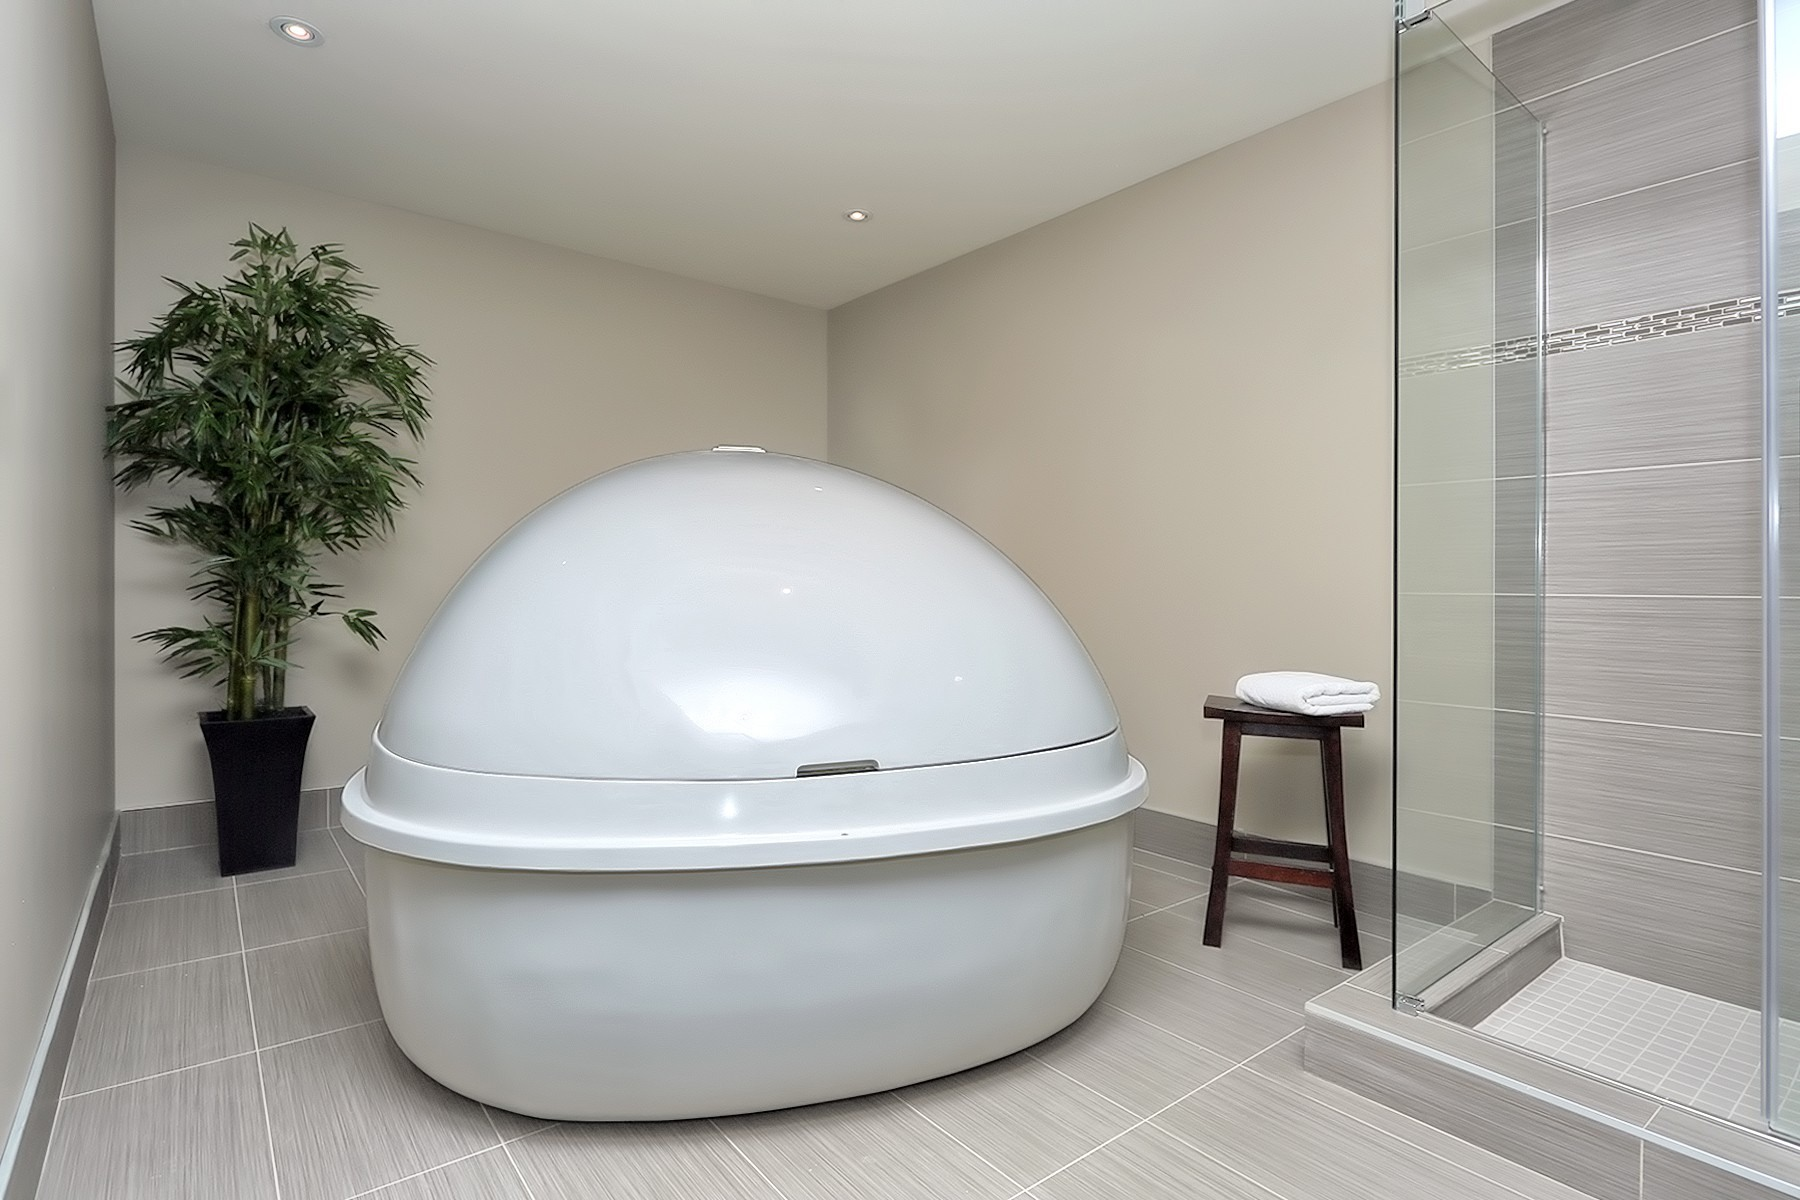 Private float suite with a fully closed pod